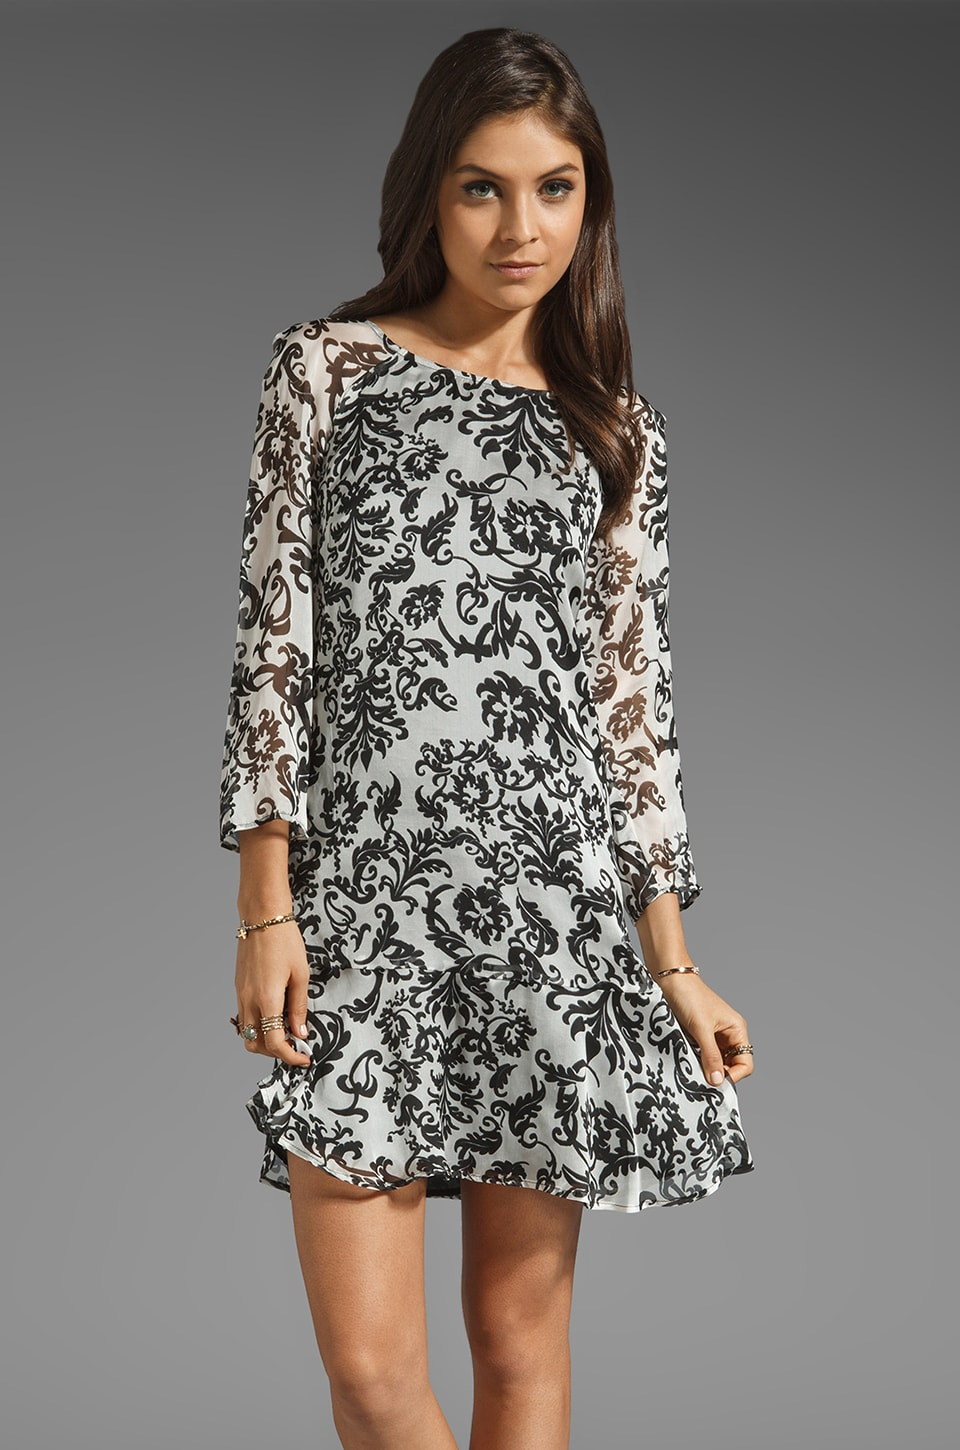 Graham & Spencer Wallpaper Print Long Sleeve Dress in Black/White